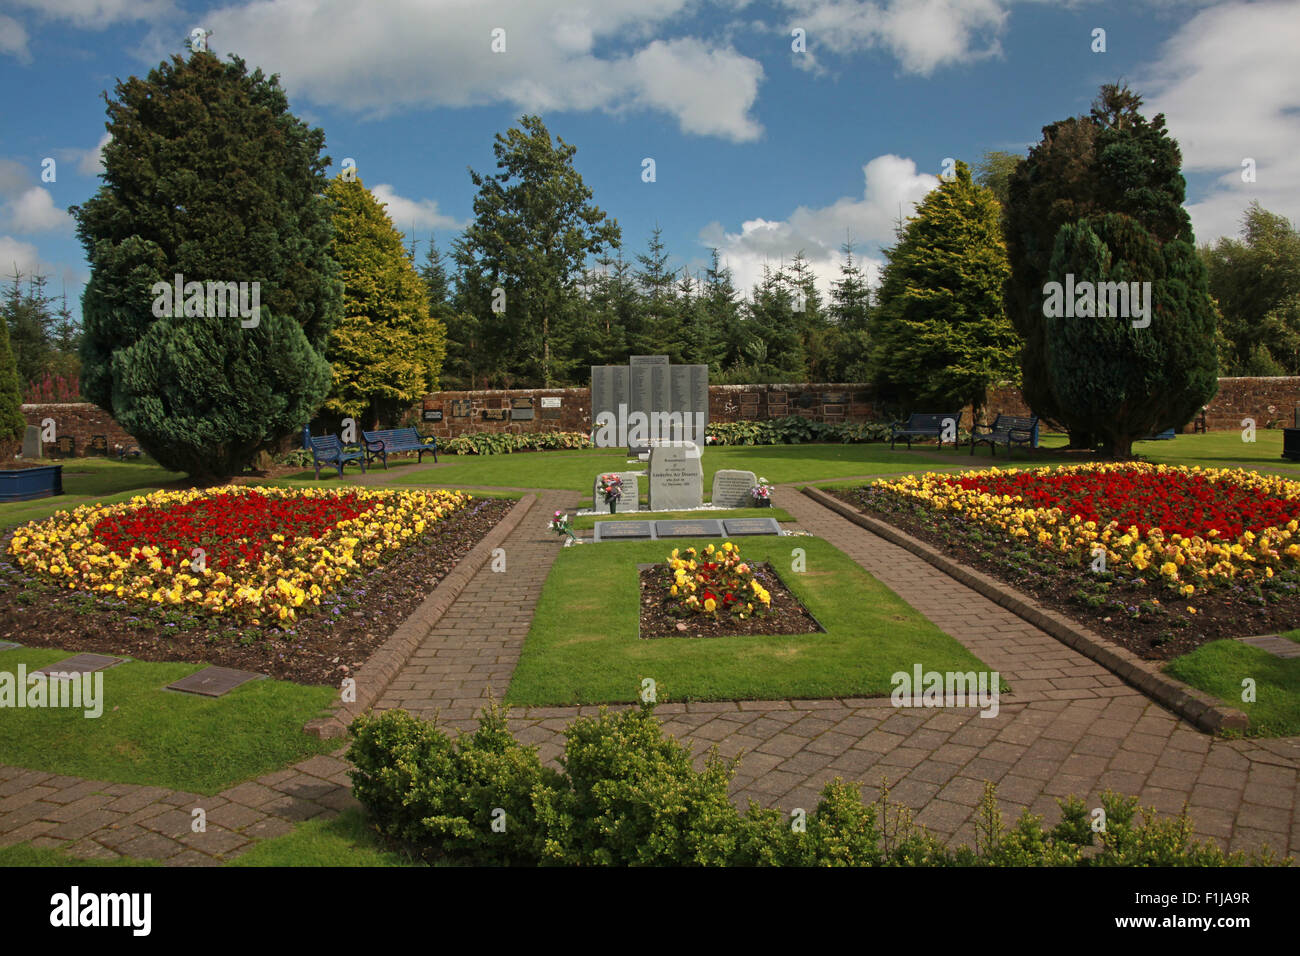 pano,panorama,wide shot,Scotland,Lodge,Visitors,Centre,DLVC,Trust,Lockerbie,Memorial,Remembrance,Scotland,Victims,Pan,Am,PanAm,flight,103,bomb,bombing,terrorist,December,1988,attack,crash,dead,site,21/12/1988,270,victims,Scottish,Town,conspiracy,blast,Tundergarth,Room,garden,of,Dryfesdal,New York,GoTonySmith,Lodge,Visitors,Centre,DLVC,Trust,Lockerbie,Memorial,Scotland,Victims,Pan,Am,PanAm,flight,103,bomb,bombing,terrorist,December,1988,attack,crash,dead,site,21/12/1988,270,victims,Scottish,Town,conspiracy,blast,Tundergarth,Room,garden,of,Dryfesdale,Cemetery,news,Cultural,understanding,remembering,innocent,transatlantic,Frankfurt,Detroit,Libyan,Libya,Colonel Muammar Gaddafi,civil,case,compensation,terrorism,PA103,30,30years,years,Syracuse,University,SU,family,collections,Story,Archive,Archives,40,35,Timeline,saga,disaster,air,Scholars,program,programs,remembrance,Clipper Maid of the Seas,N739PA,Boeing,727,plane,aircraft,Scotland,UK,United Kingdom,GB,Great Britain,resting,place,Buy Pictures of,Buy Images Of,New York,al megrahi,30 Years